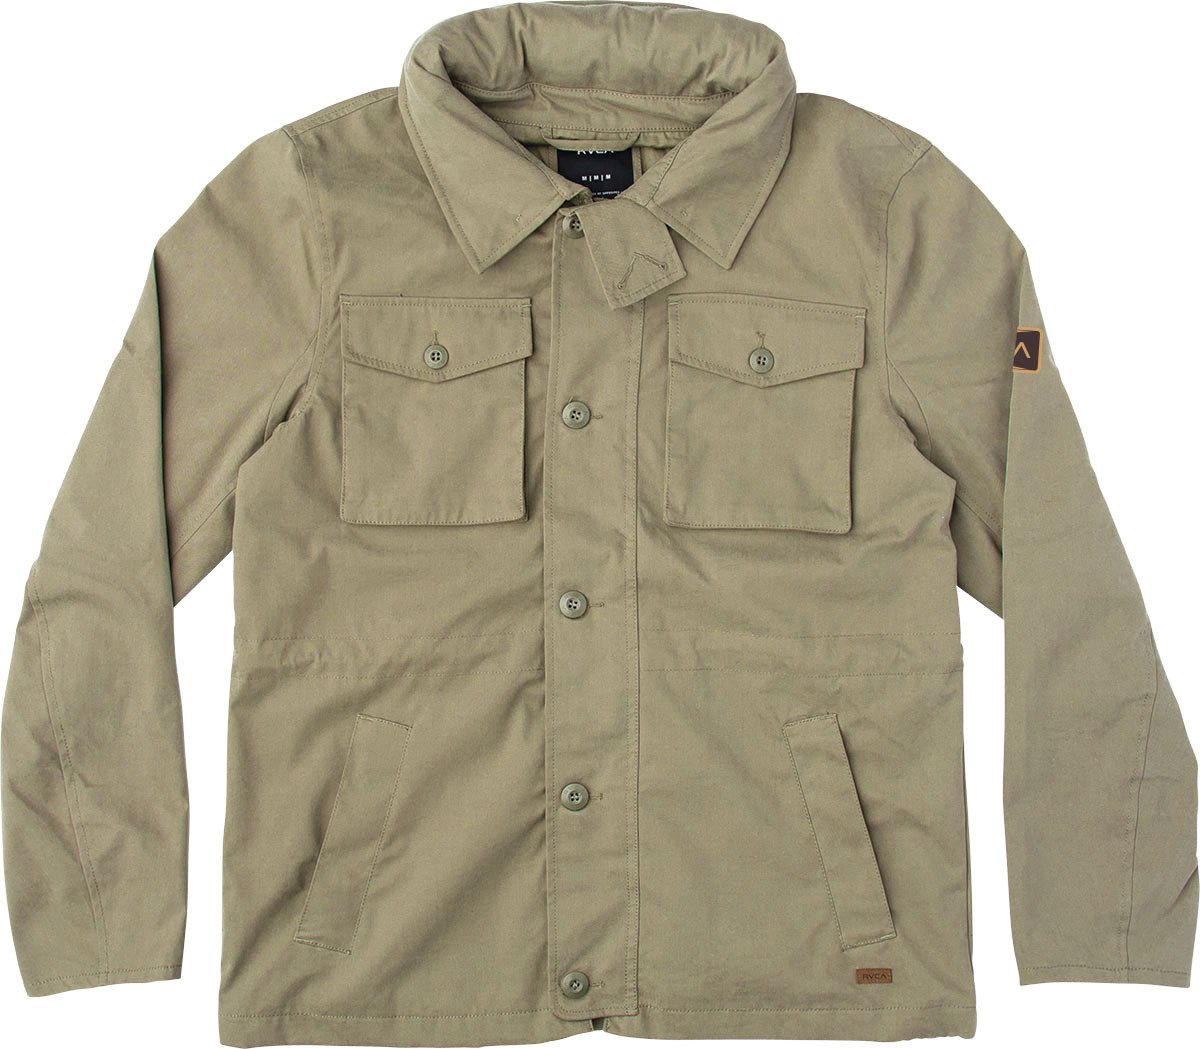 RVCA Men's Systems Field Jacket, Fatigue, Large